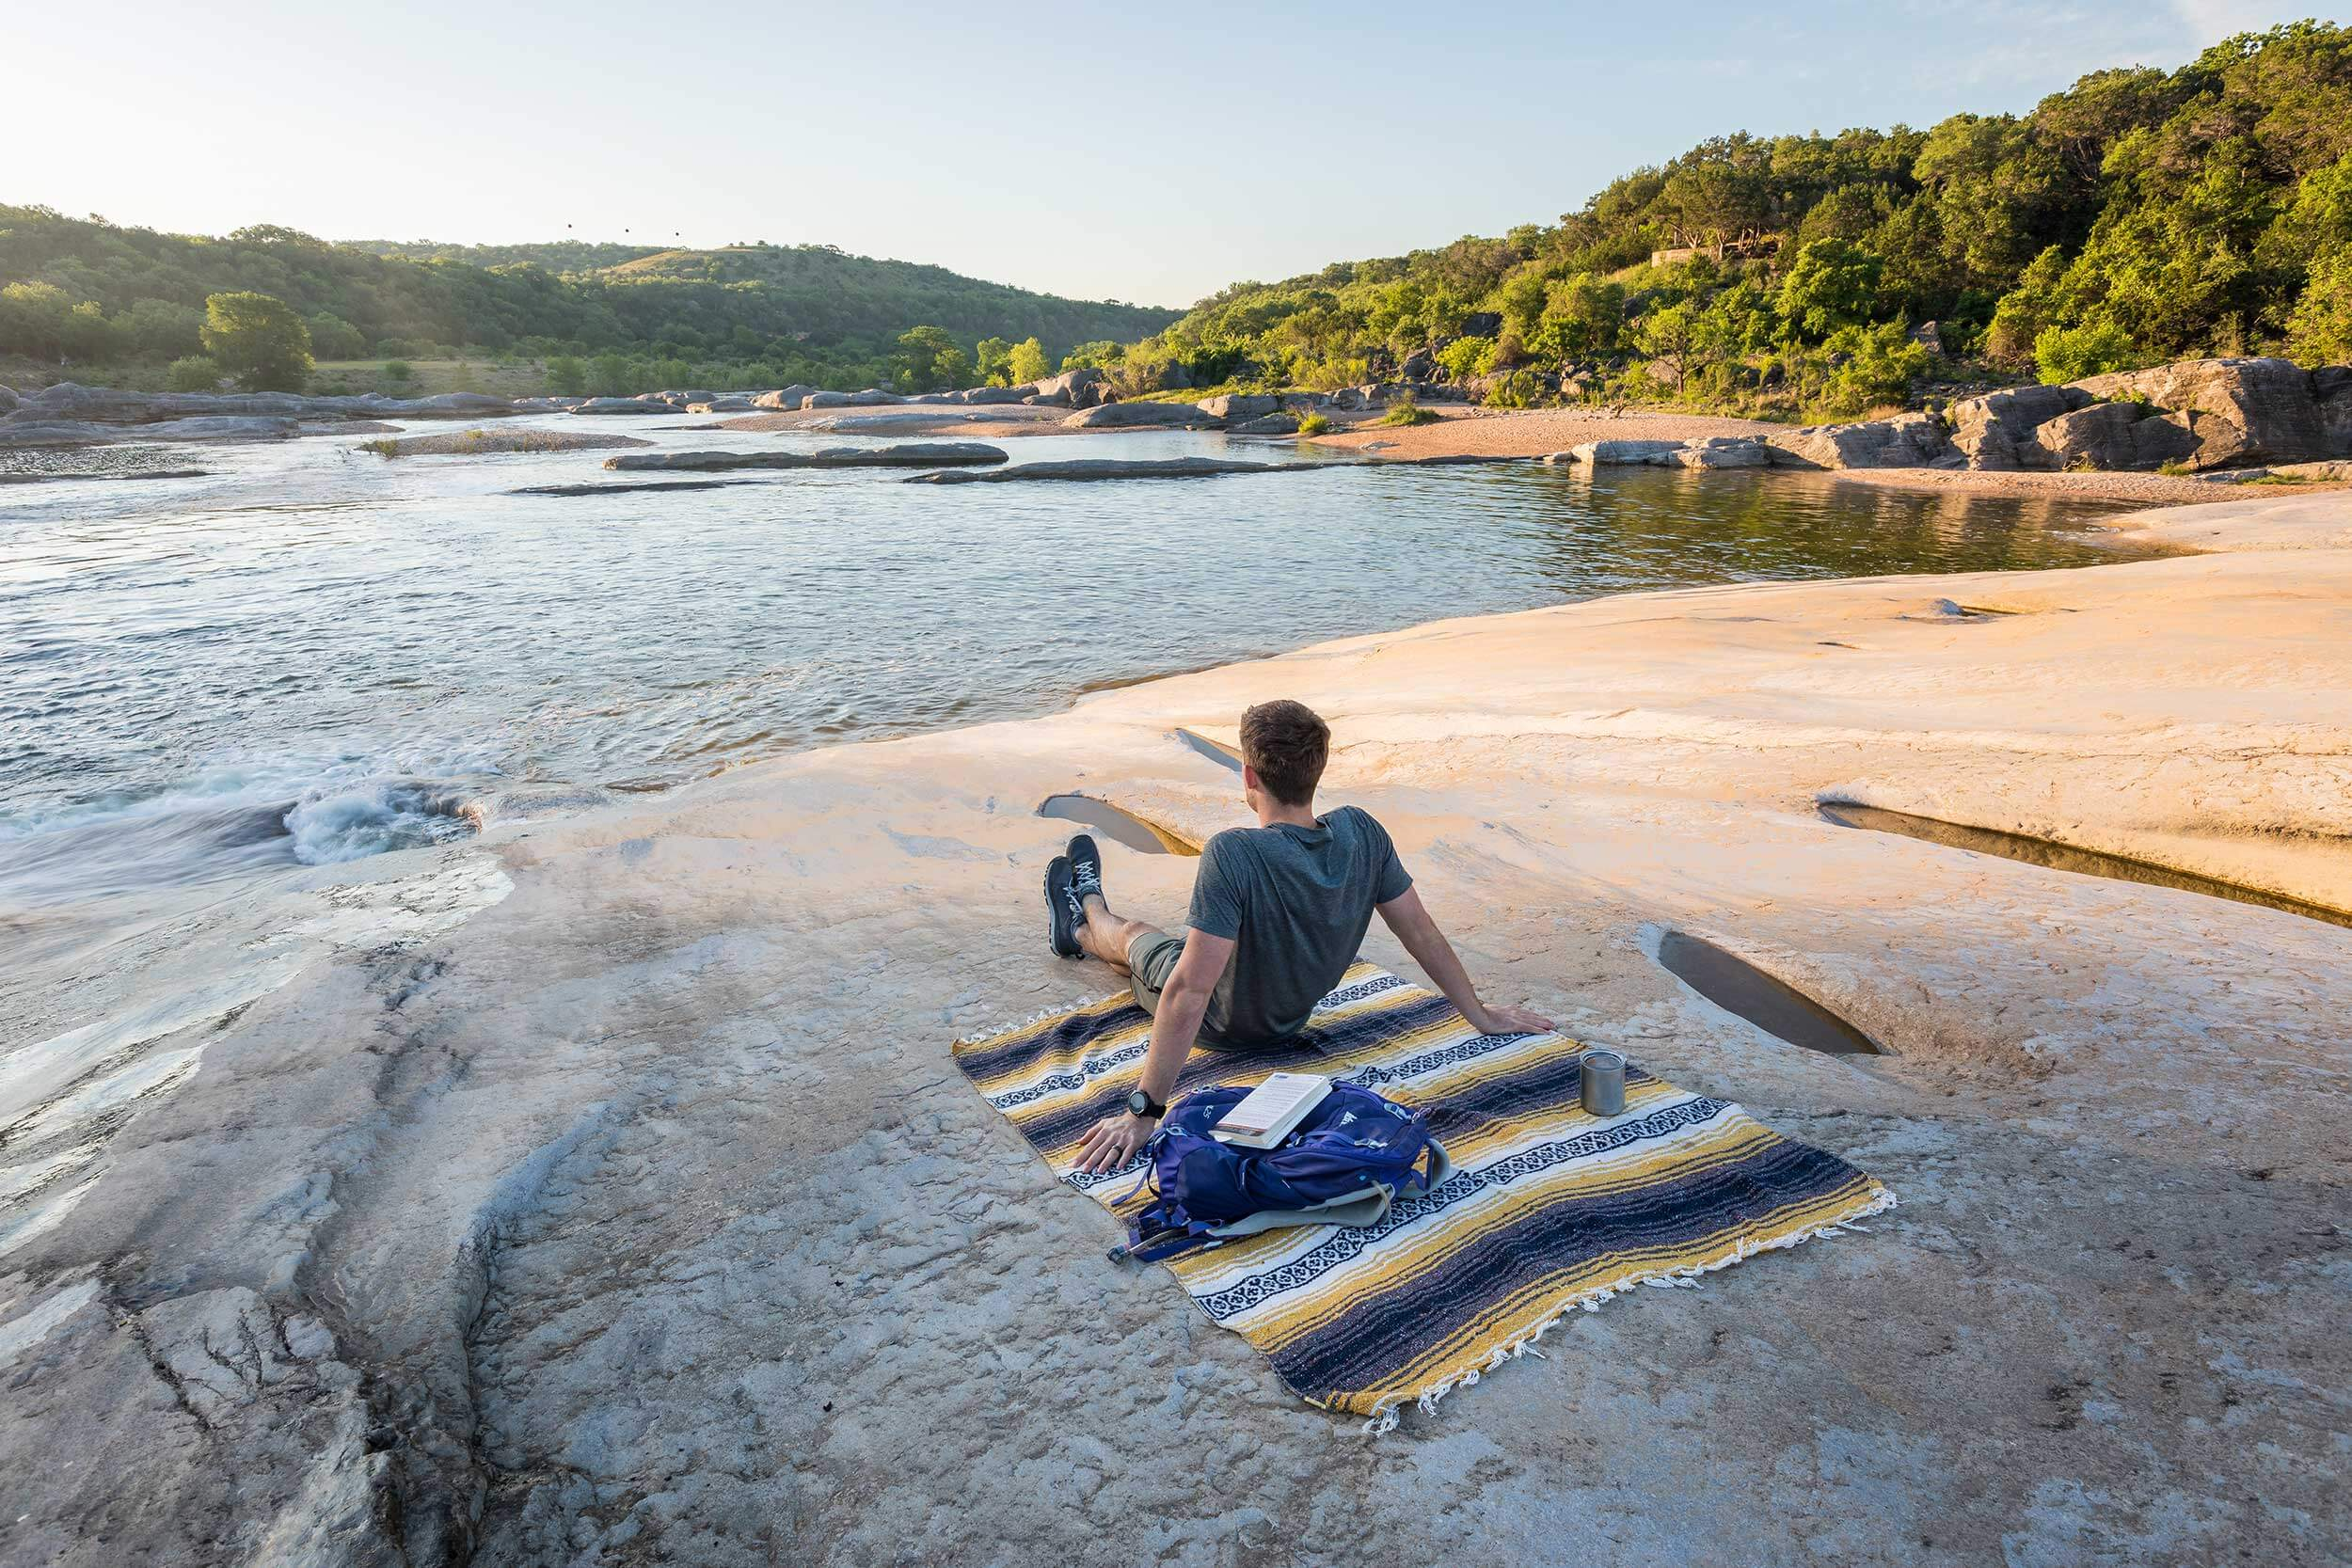 A man sits on a blanket and gazes out at the water in Pedernales Falls State Park, Texas.